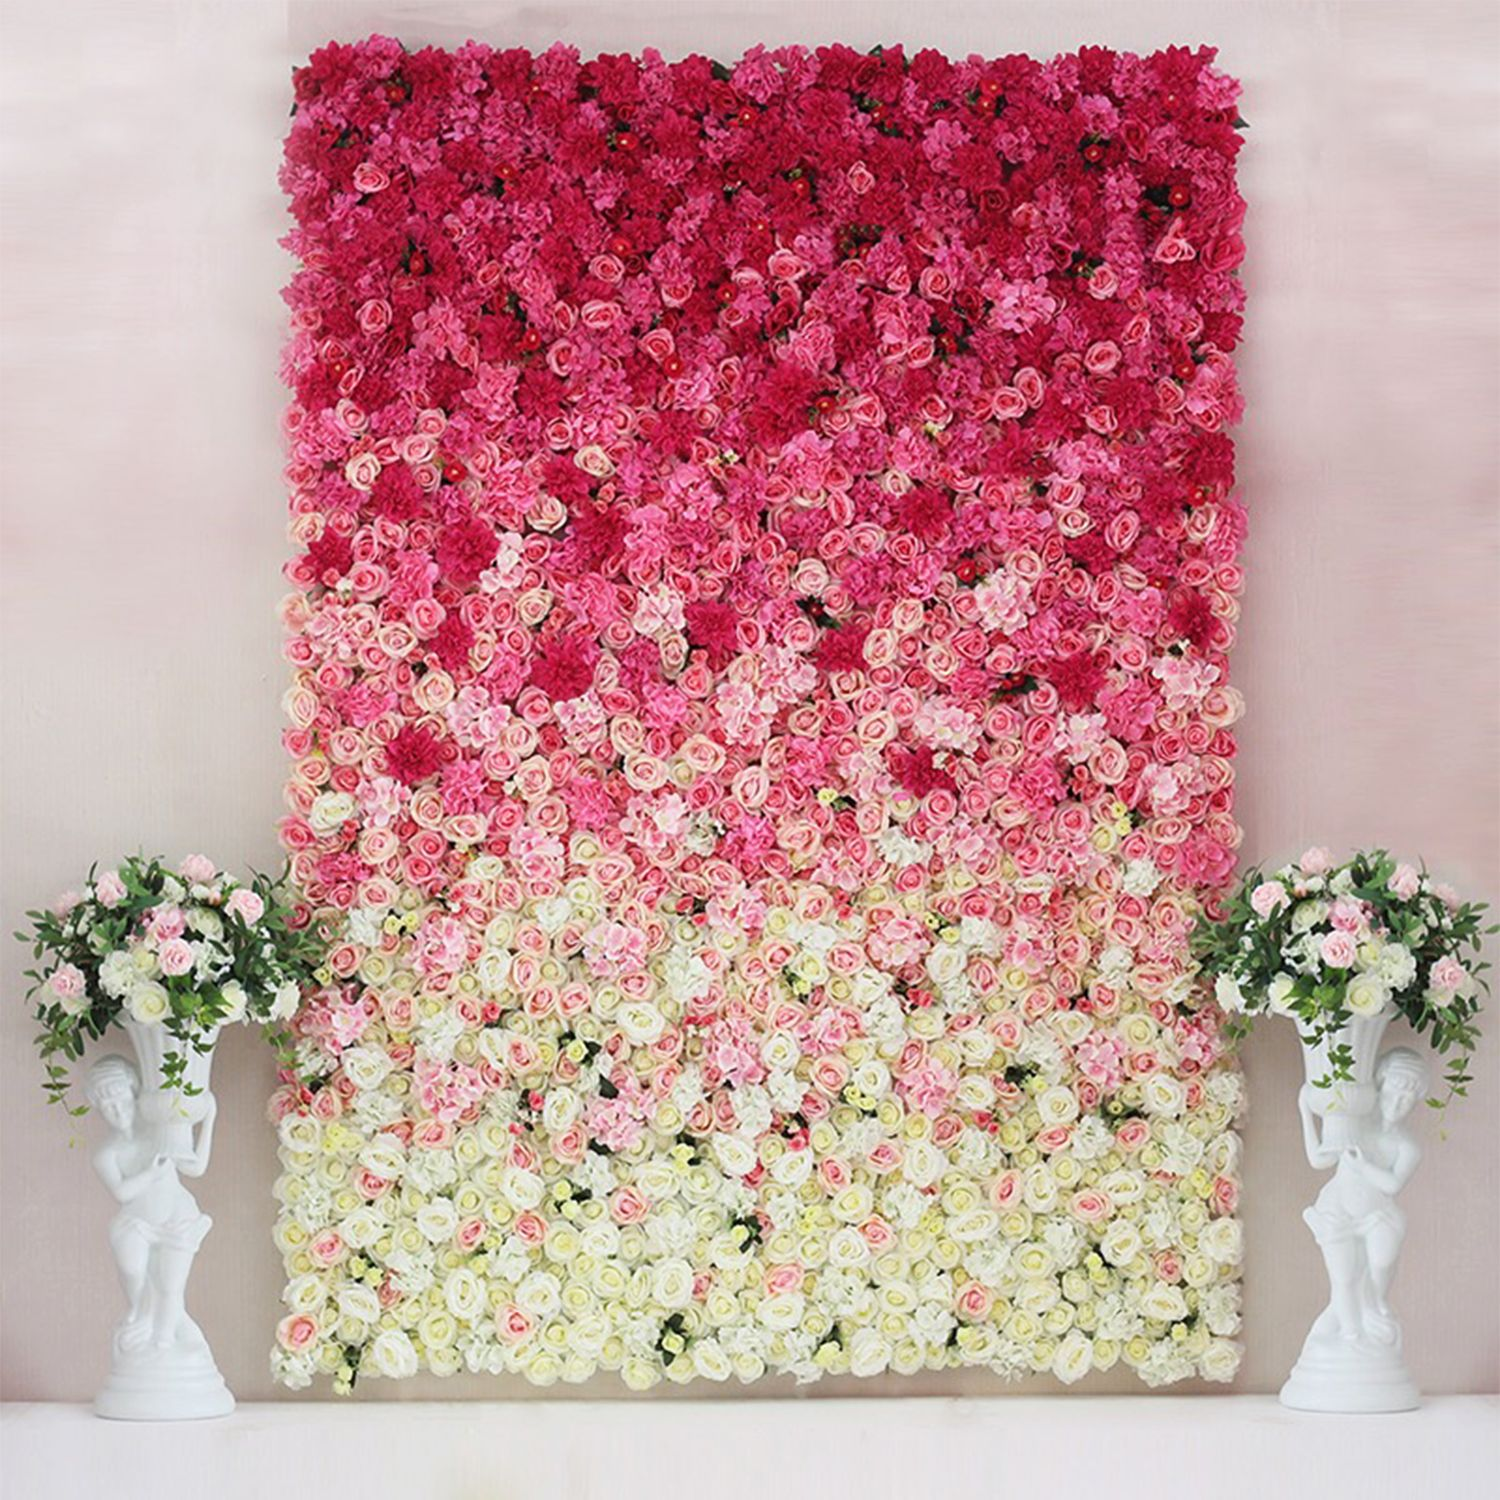 Artificial Flowers Wall For Wedding And Events Background Flower Wall Flower Wall Backdrop Flower Wall Wedding